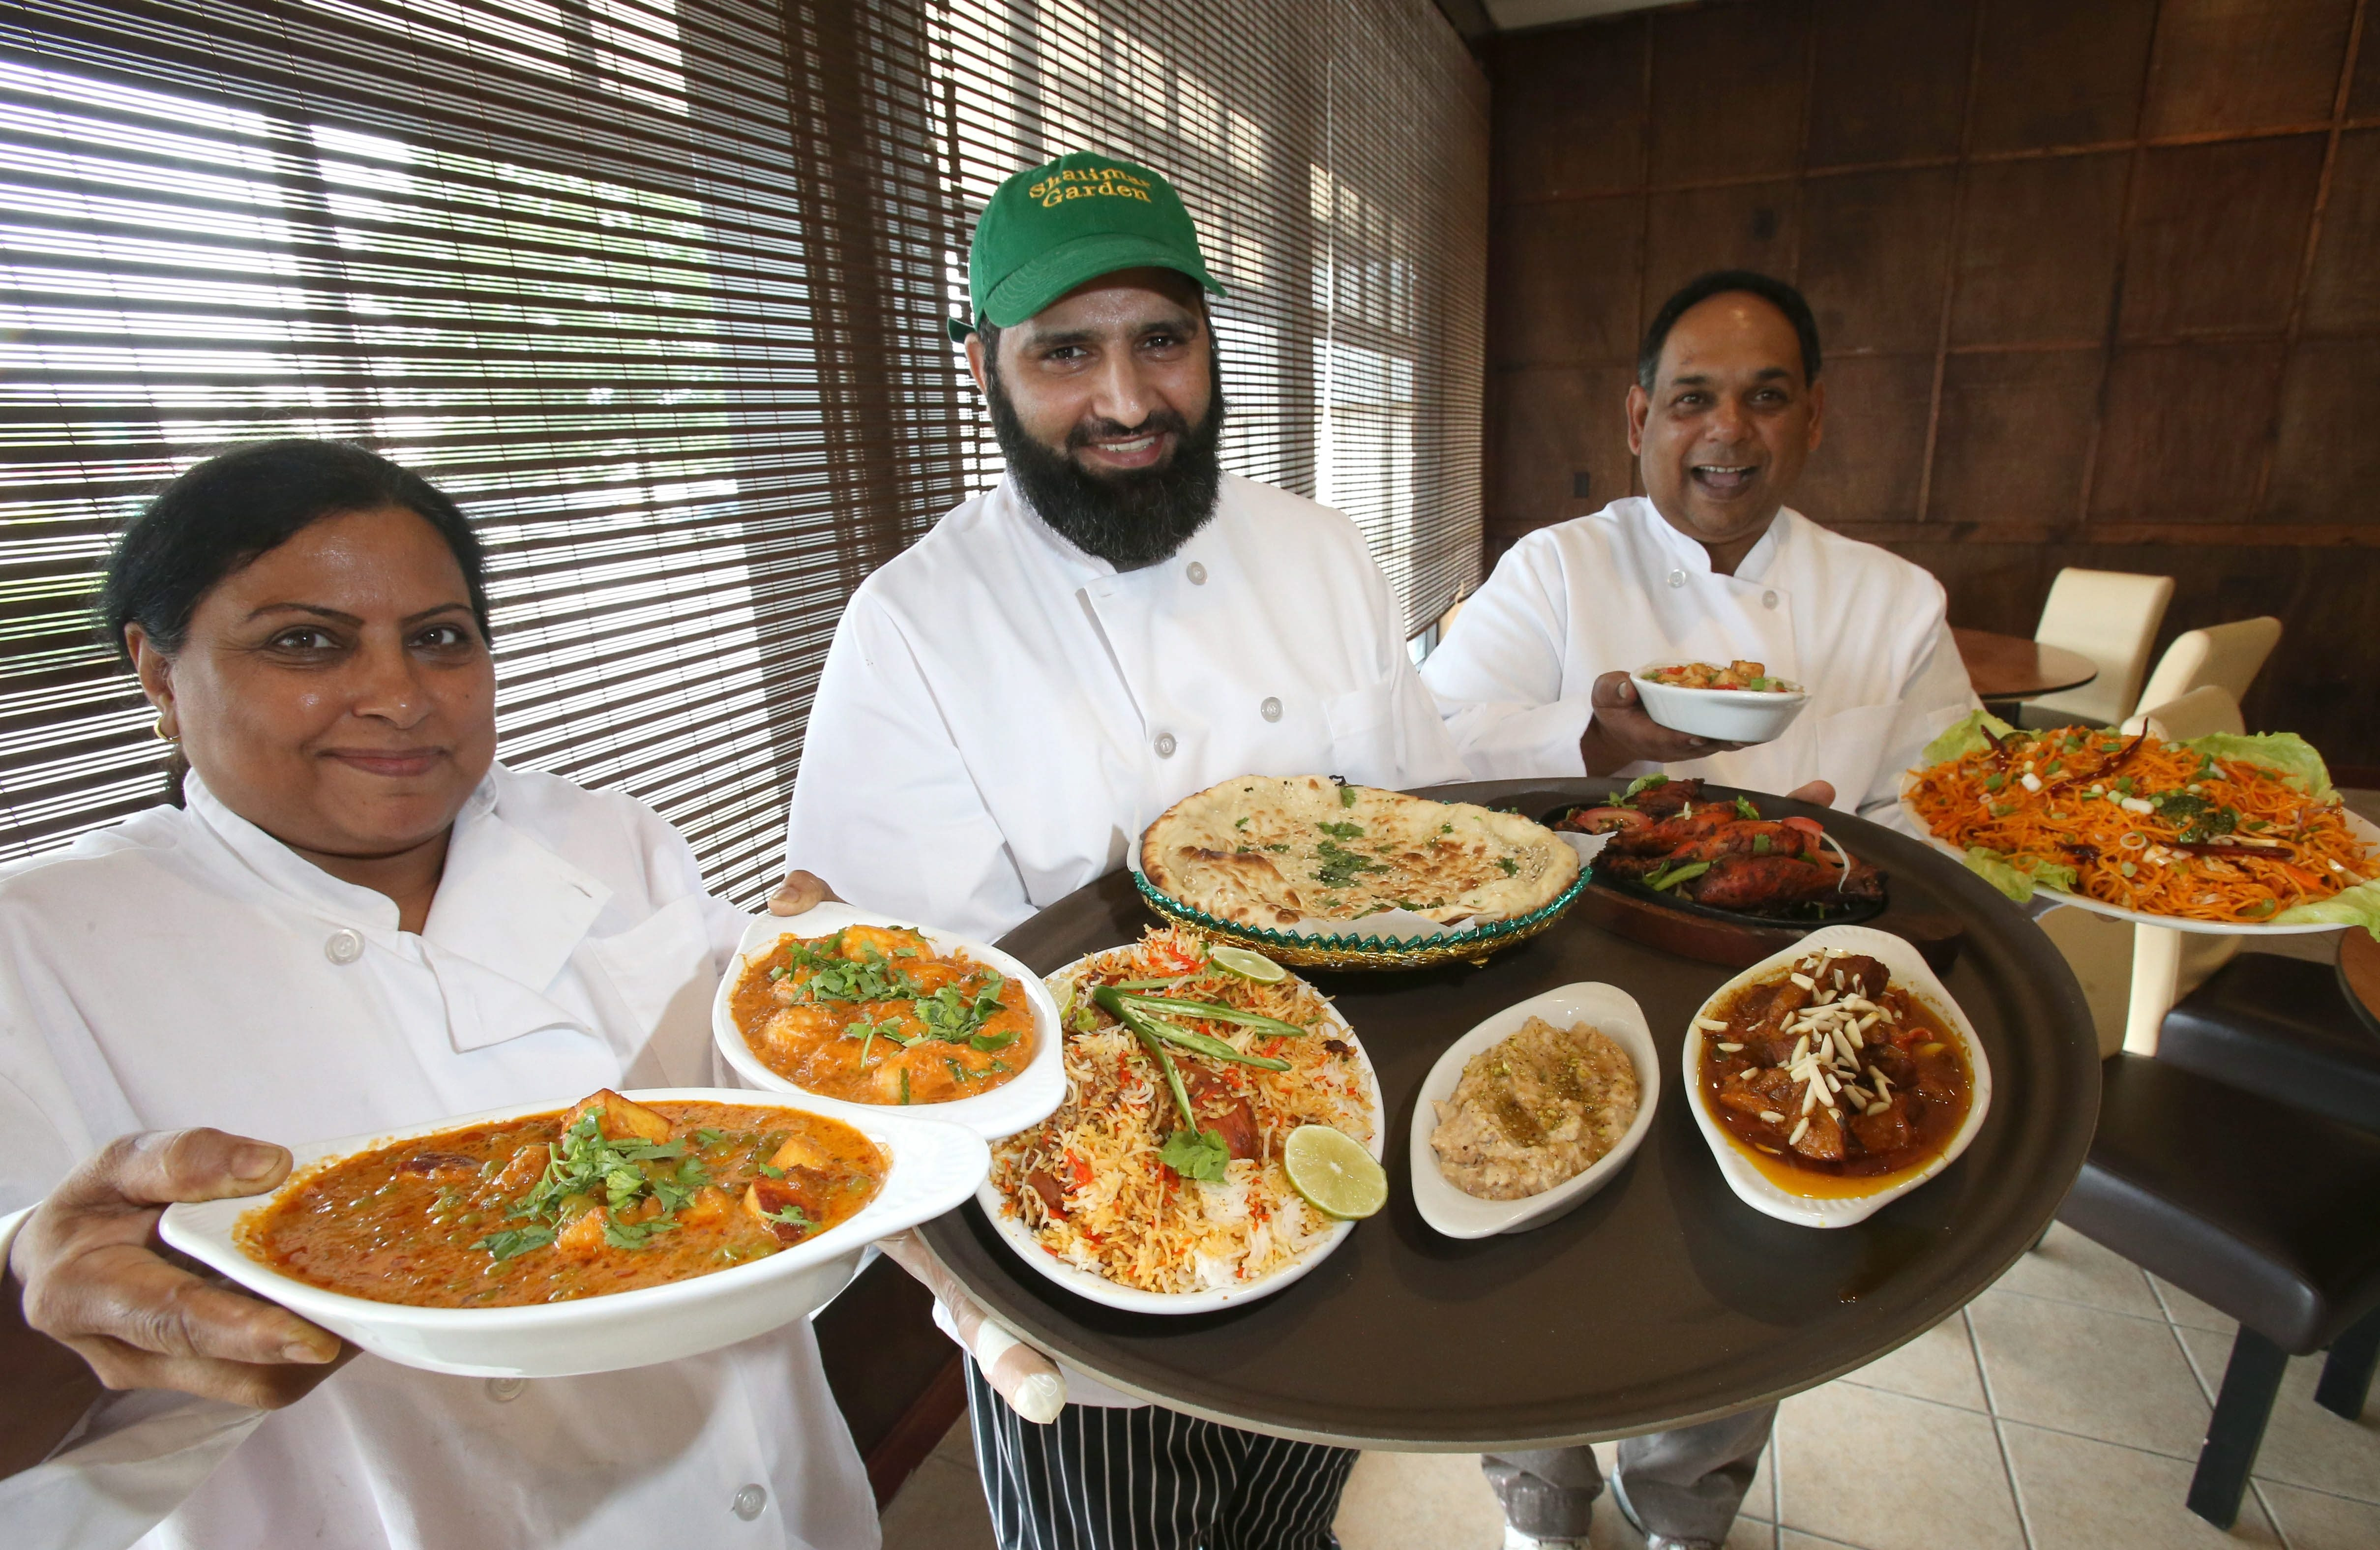 Robert Kirkham/Buffalo News  Specialty chefs display Hakka Chinese and Kashmiri dishes from Shalimar Garden. From left are chefs Poonam Matta, Abdul Shakoor and Robin Gabrail.